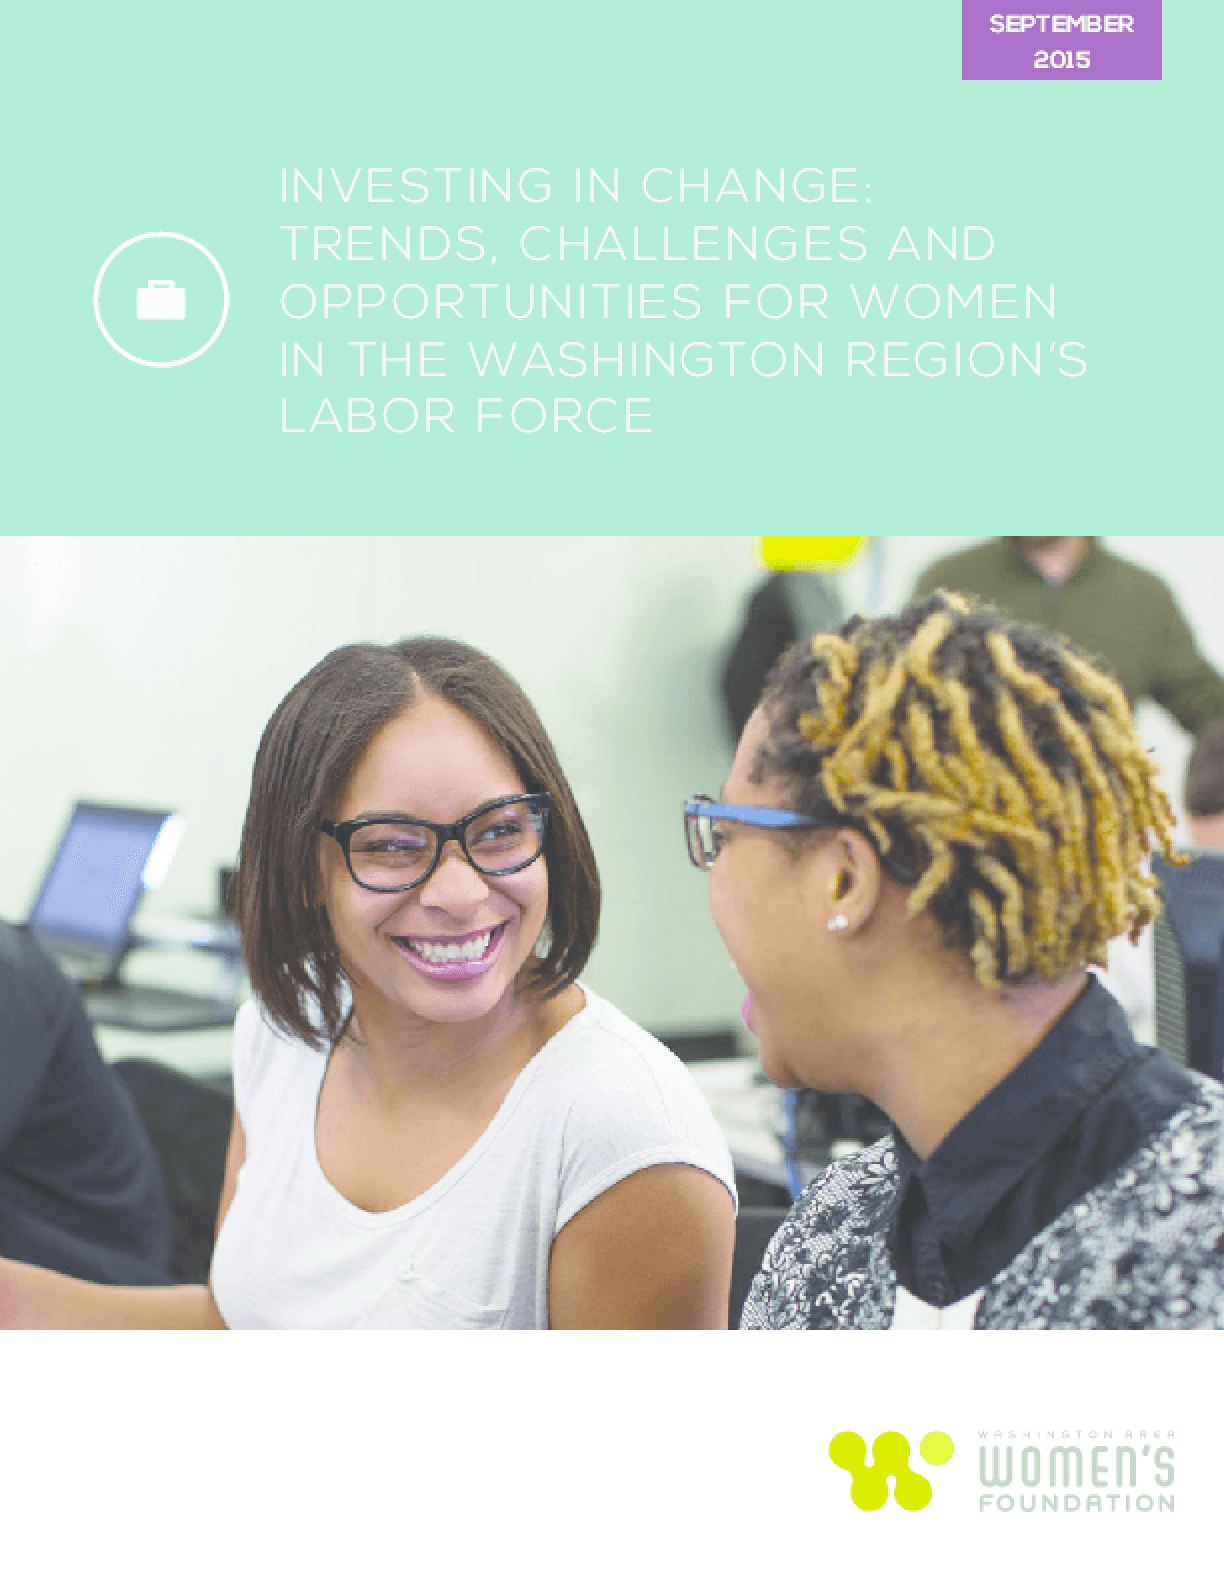 Investing in Change: Trends, Challenges, and Opportunities For Women in the Washington Region's Labor Force